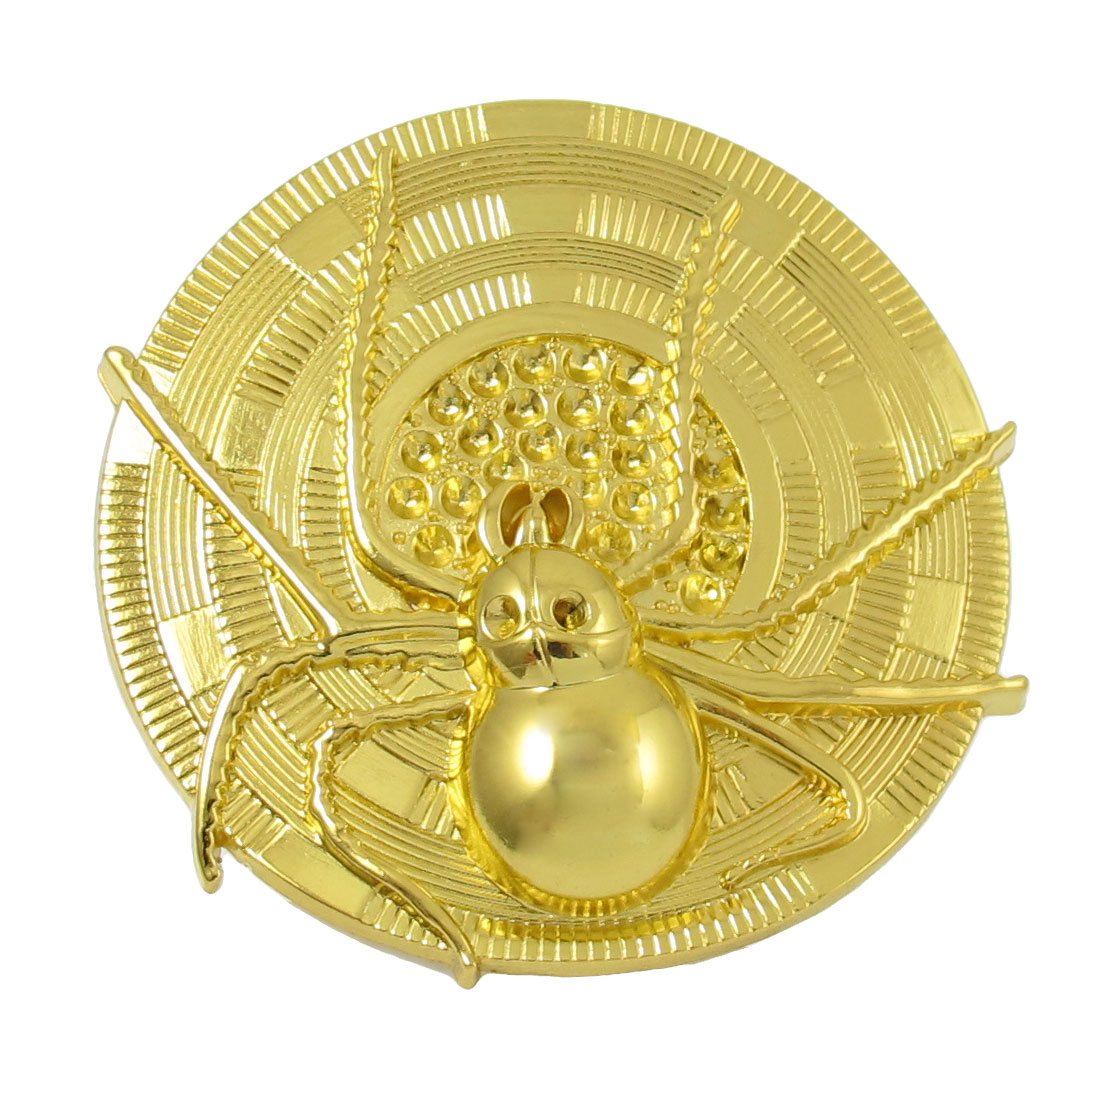 Gold Tone 3D Spider Pattern Grille Badge Decoration for Auto Car Vehicle